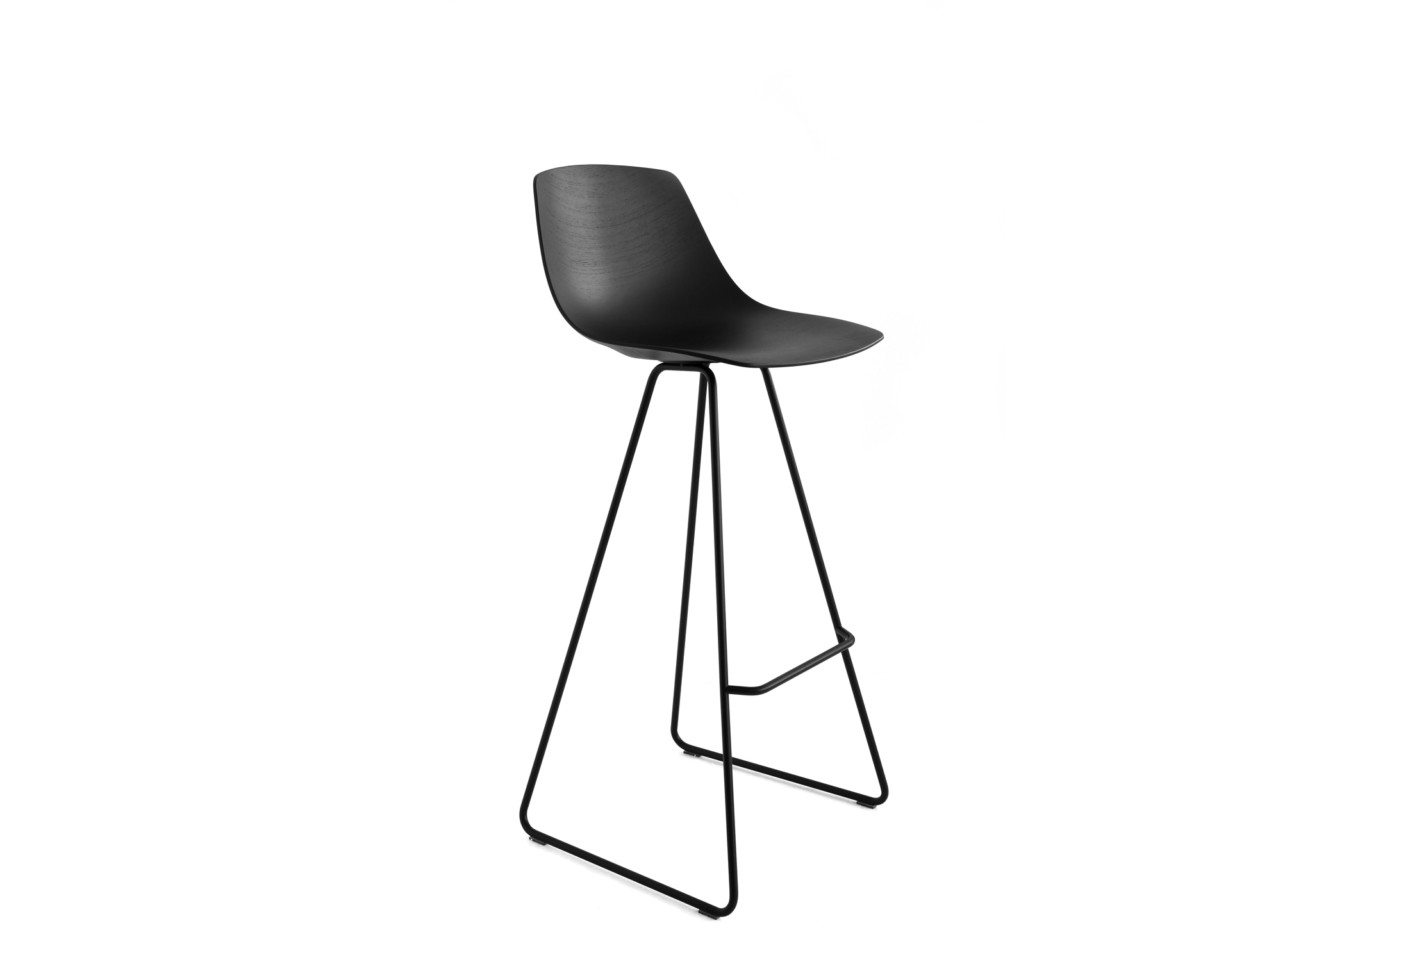 Miunn Bar Stool By Lapalma